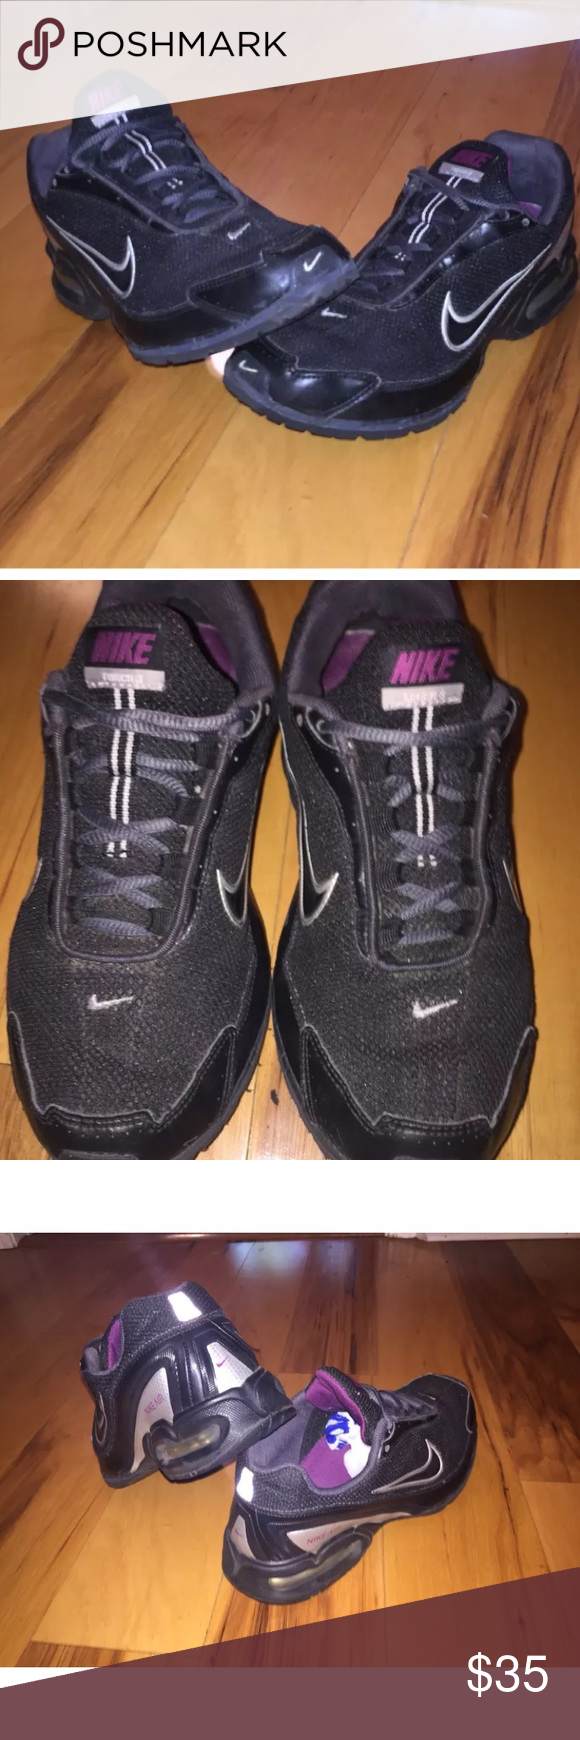 Women s Nike Air Max Torch 3 Running Shoes Sz 7.5 Nike 319117-002  Refurbished condition- the fore-soles on both shoes had to be  professionally replaced with ... 5b78c21f45